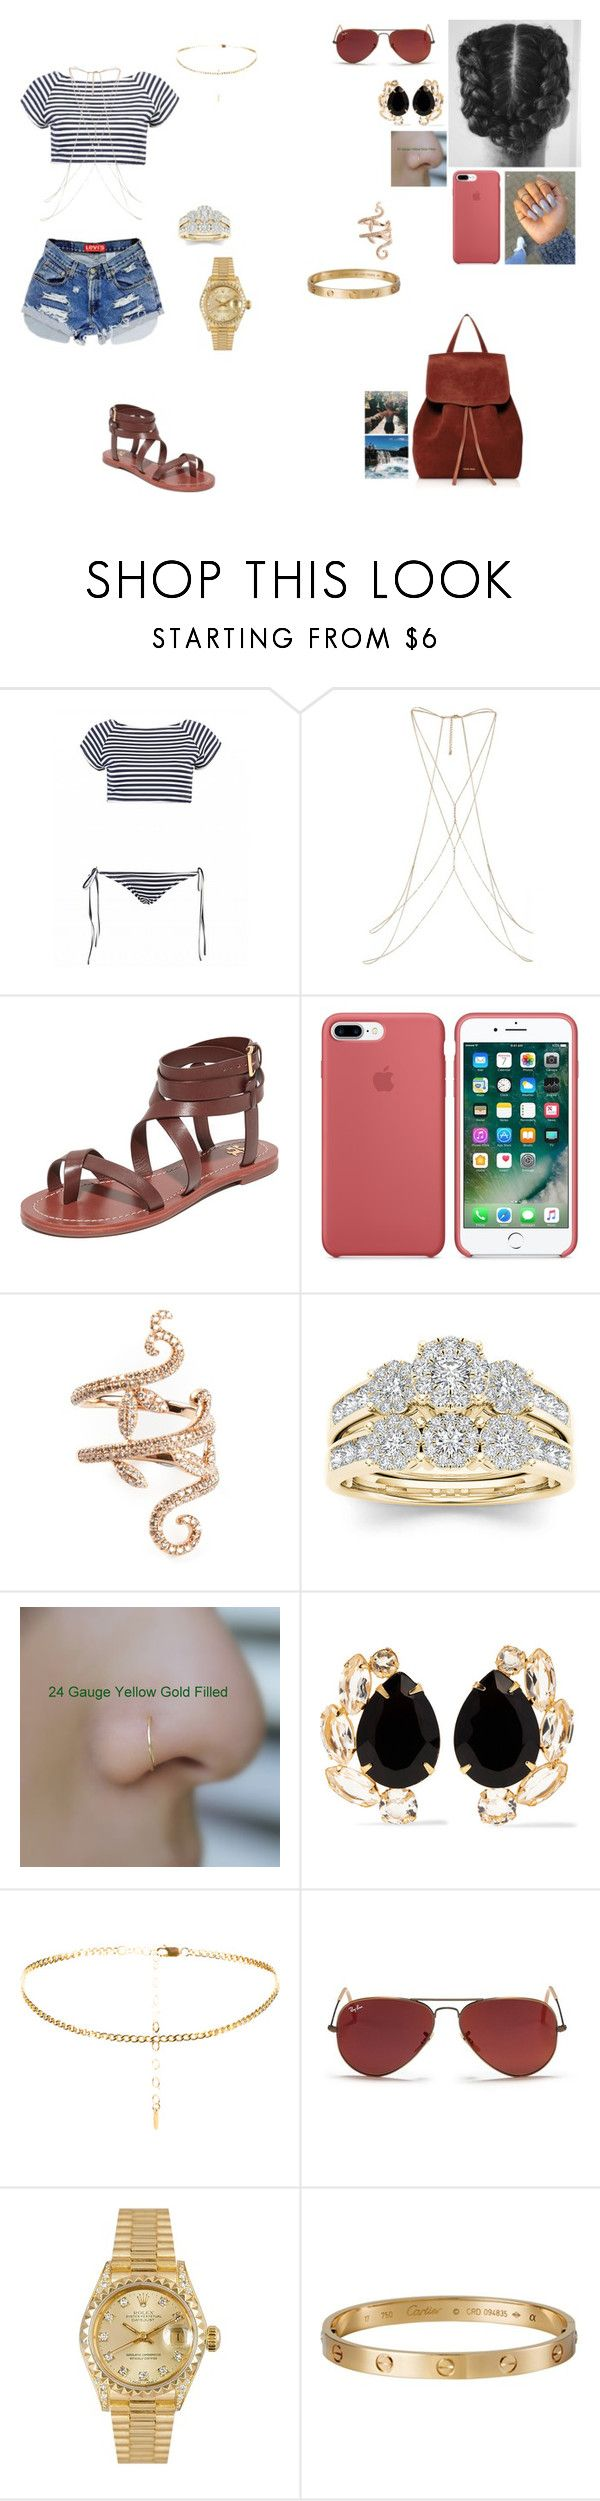 """""""Sally visiting mexico with her friends and her husband."""" by princesscece6 ❤ liked on Polyvore featuring Levi's, River Island, Tory Burch, Elise Dray, Modern Bride, Bounkit, Ray-Ban, Rolex, Cartier and Mansur Gavriel"""